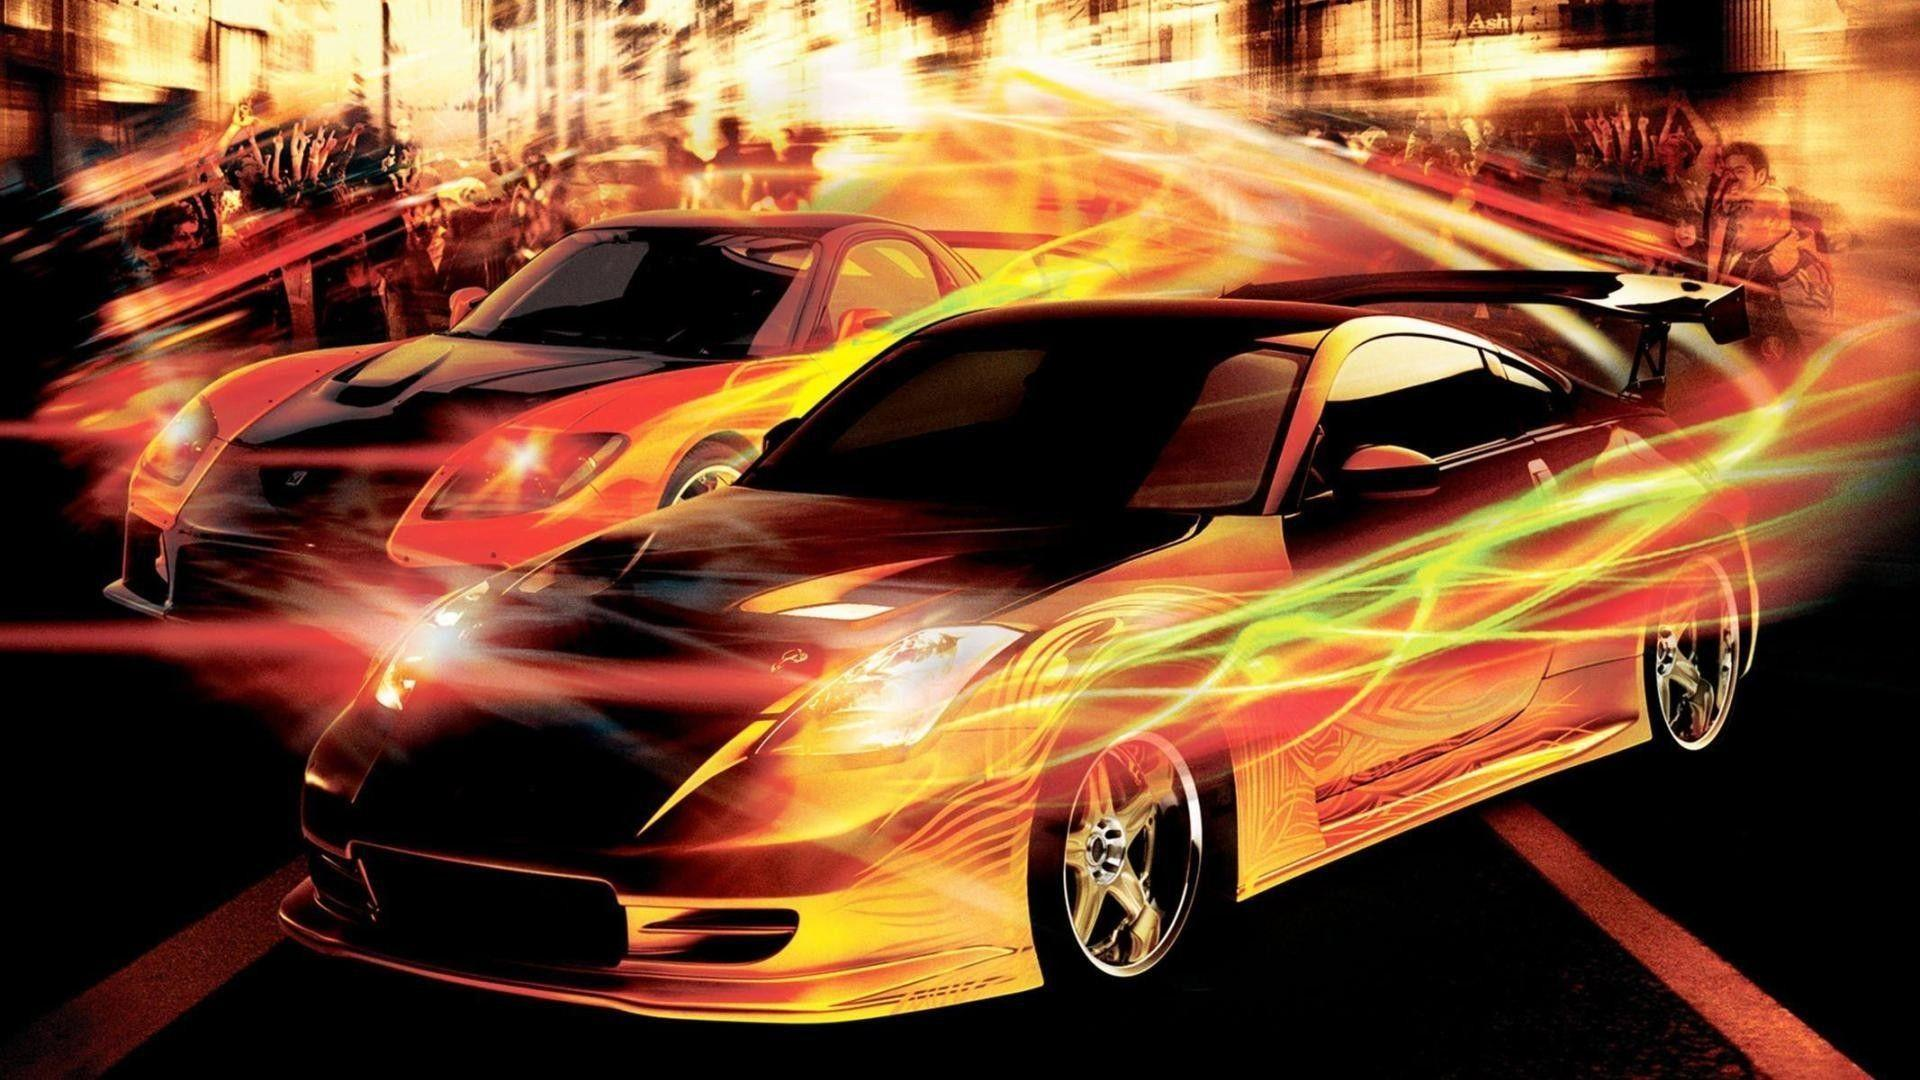 Tokyo Drift Cars Wallpapers Wallpaper Cave